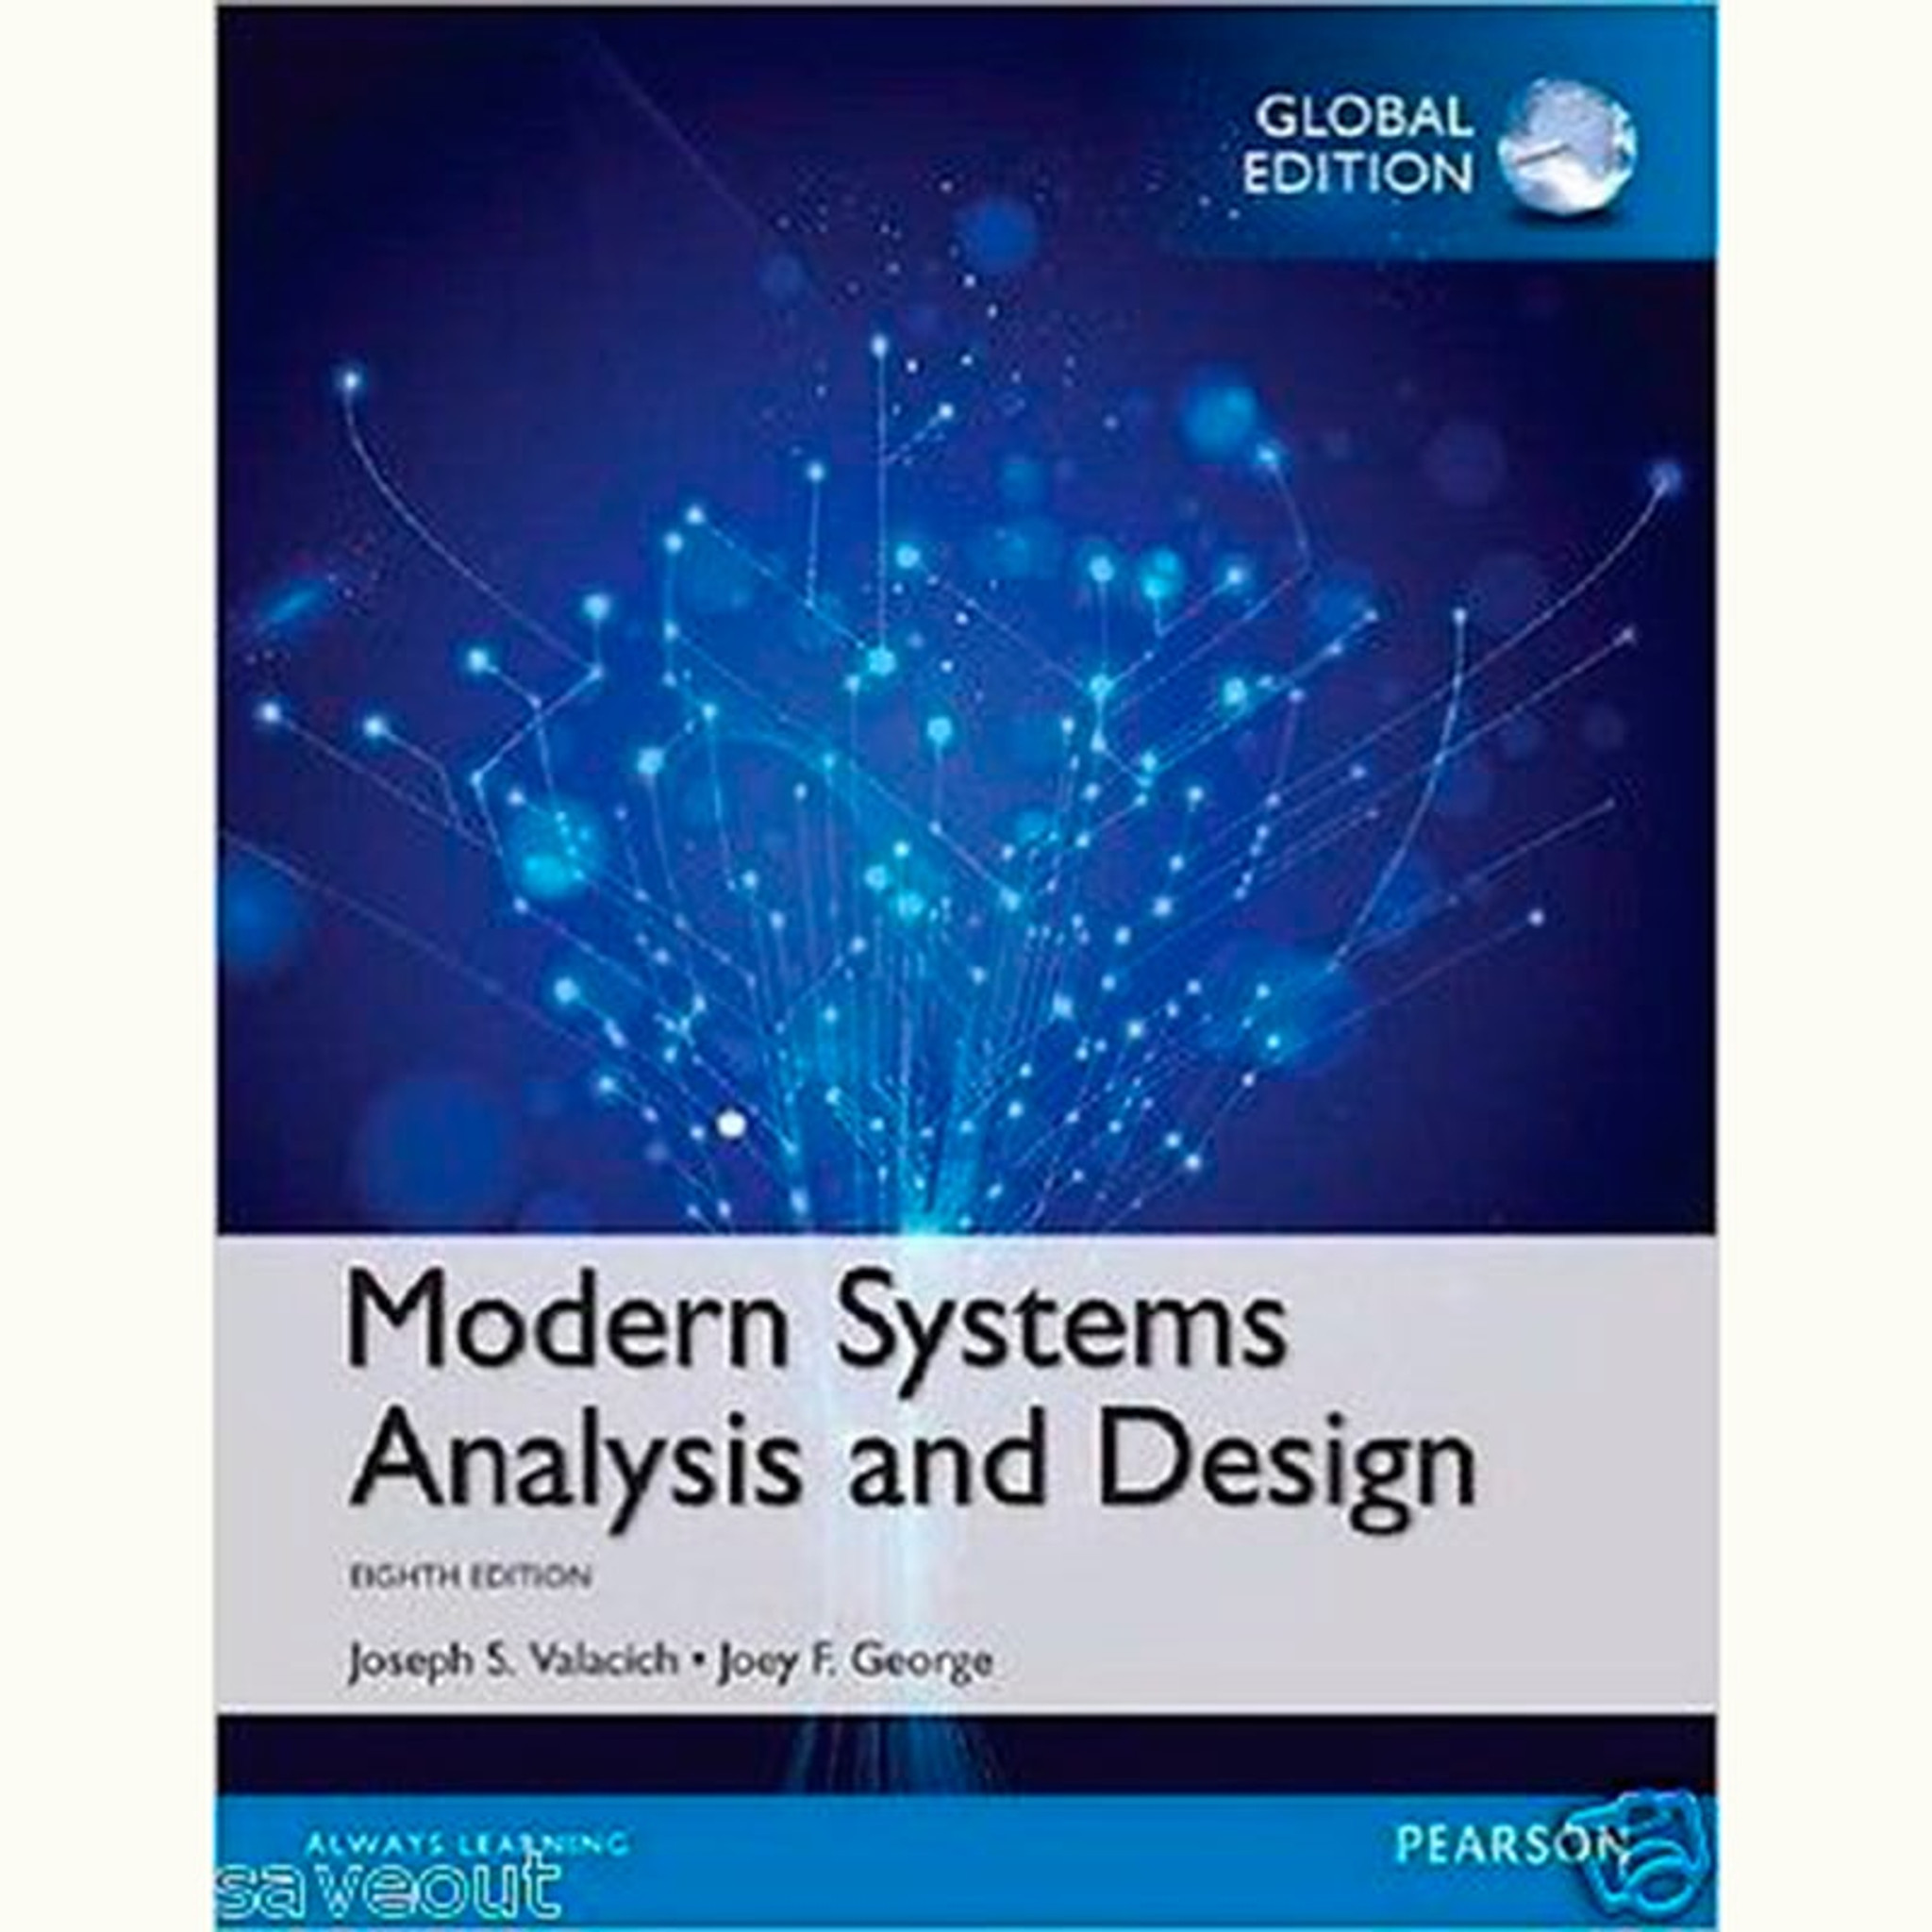 9781292154145 Modern Systems Analysis And Design 8th Edition Joseph Valacich And Joey George